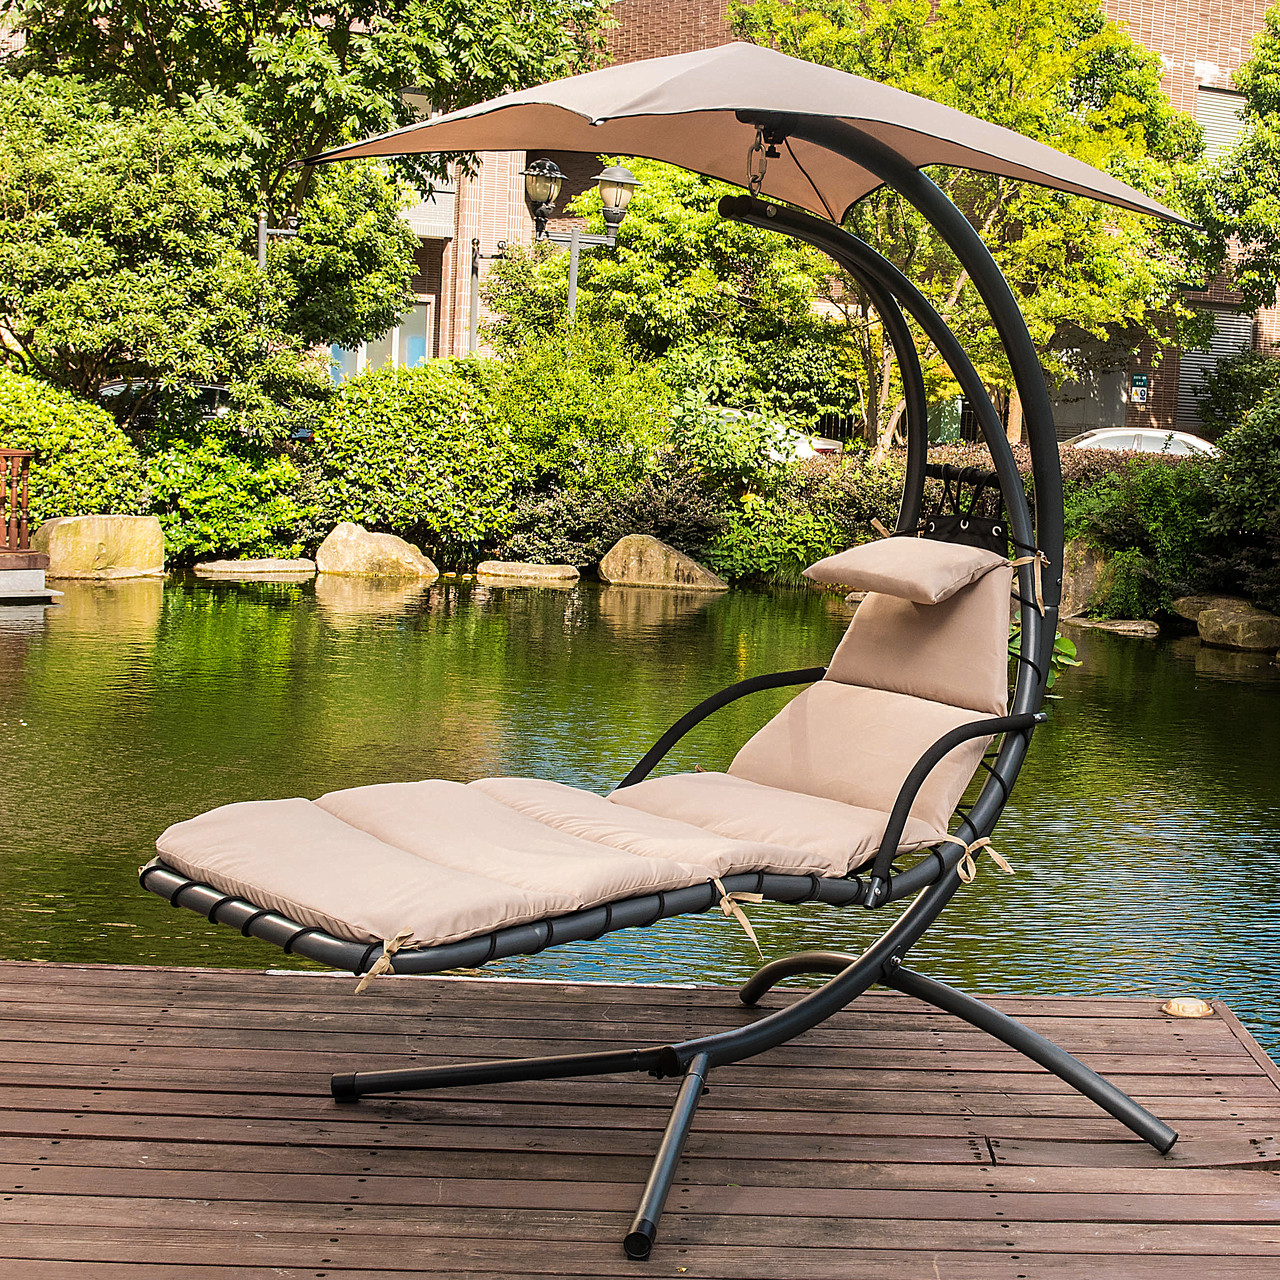 Awesome Lazy Daze Hammocks Dream Chair With Umbrella Hanging Chaise Lounge Chair  Arc Curved Hammock (Taupe